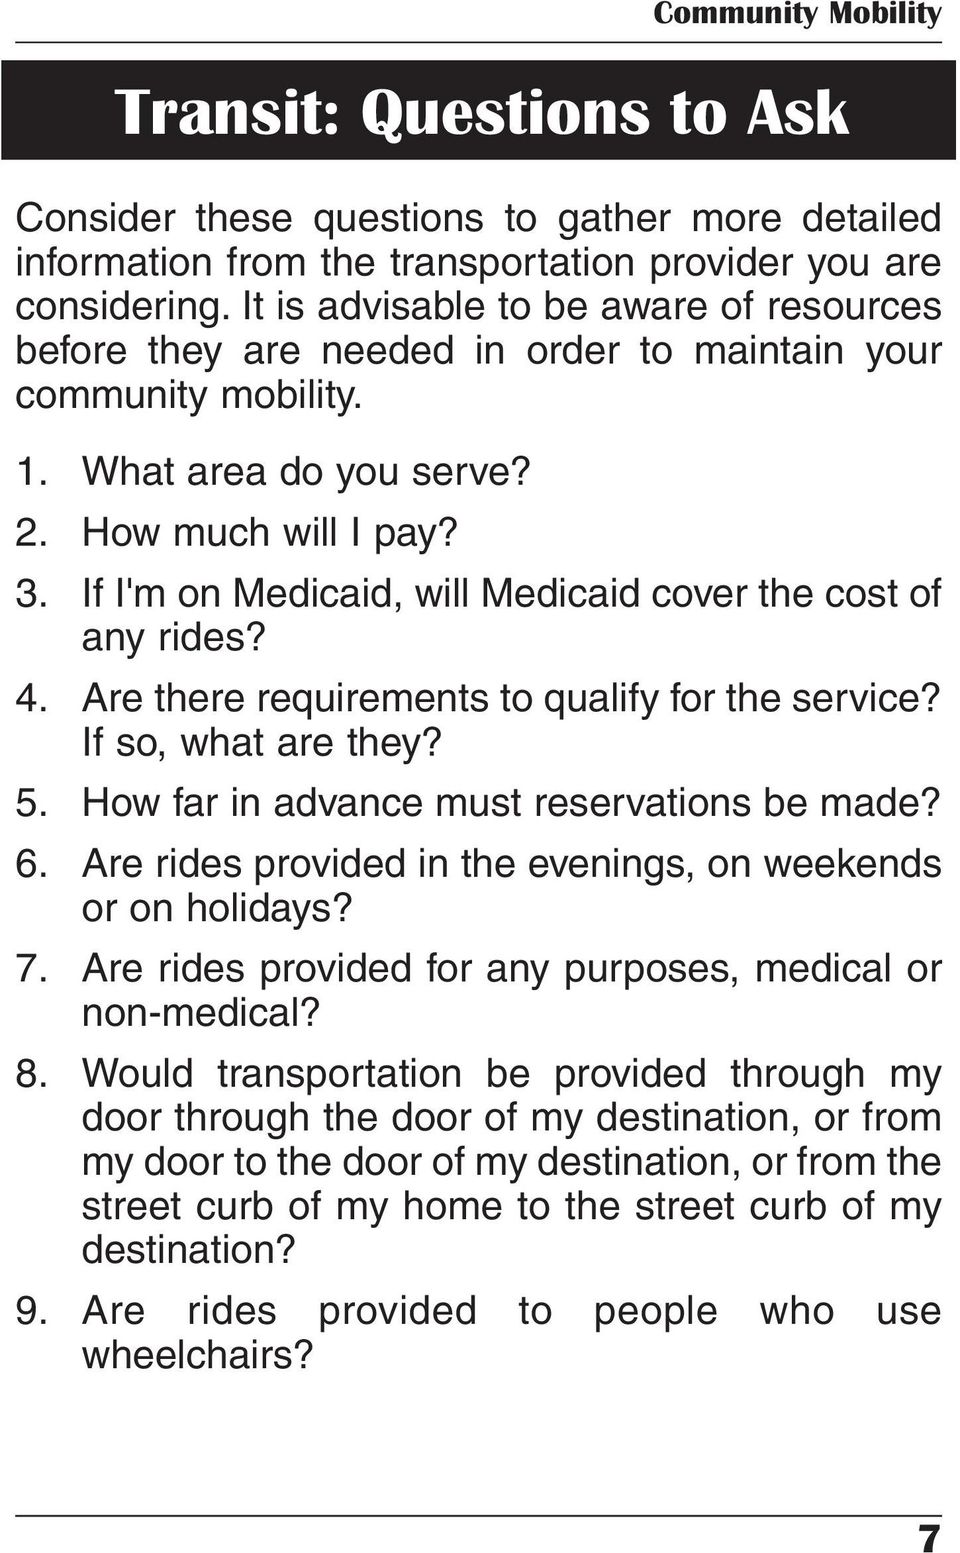 If I'm on Medicaid, will Medicaid cover the cost of any rides? 4. Are there requirements to qualify for the service? If so, what are they? 5. How far in advance must reservations be made? 6.